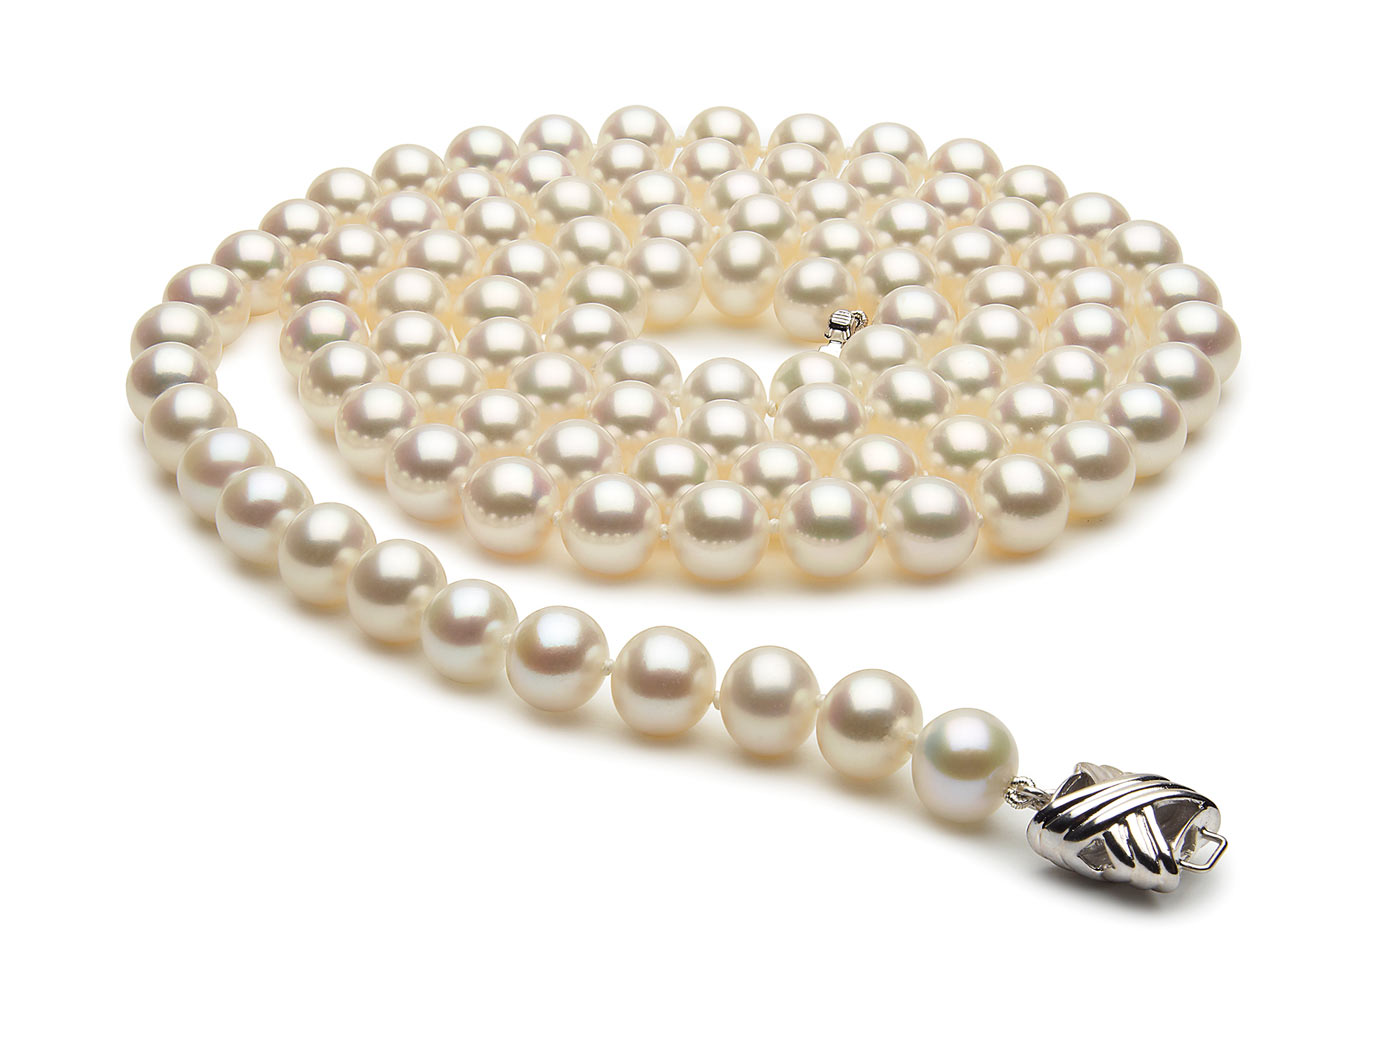 36 Inch 8.5mm x 9mm Freshwater Cultured Pearl Necklace